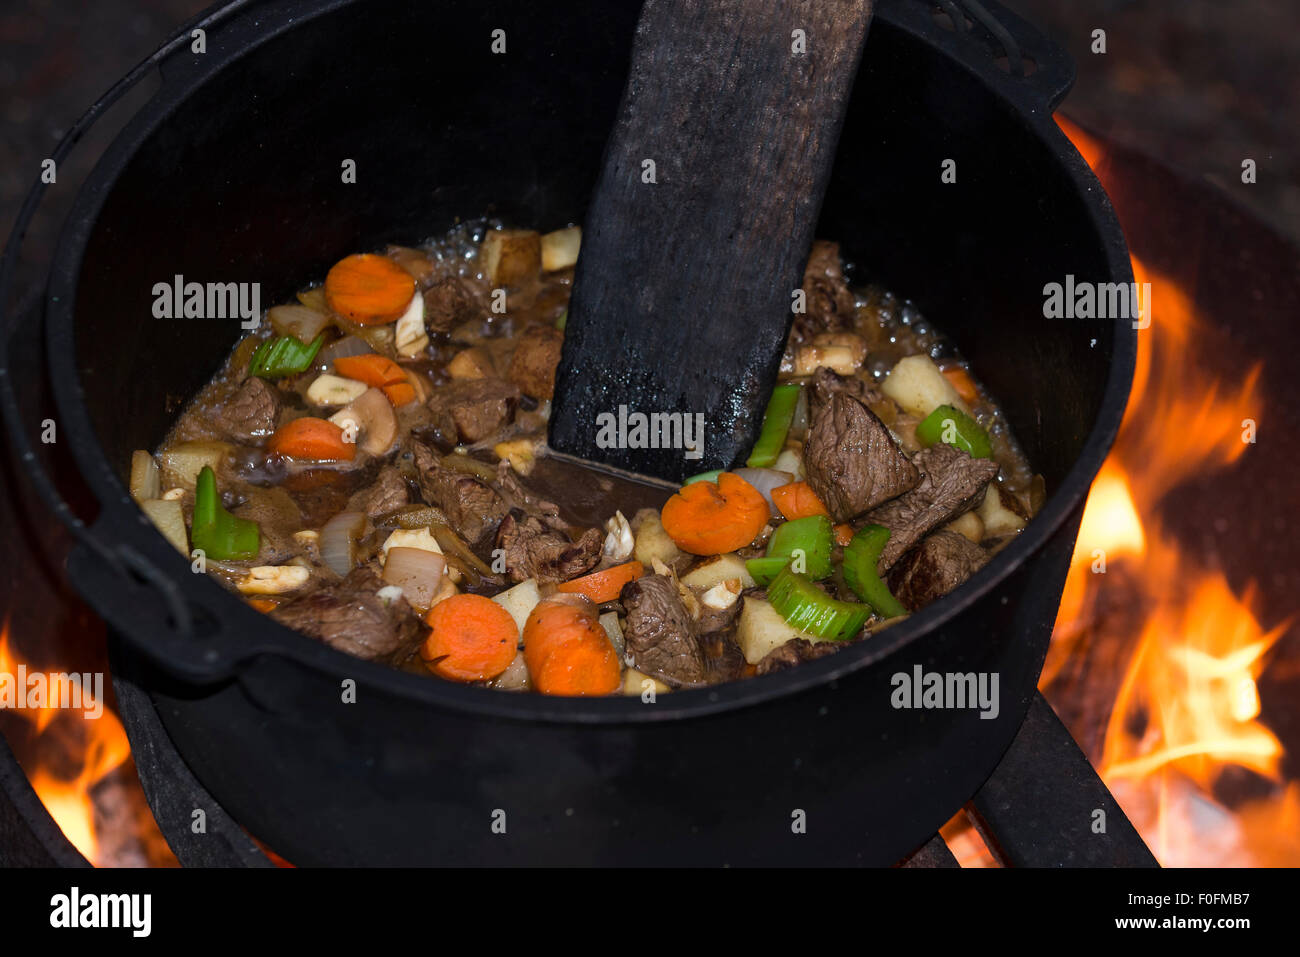 Beef Stew Cooking In A Cast Iron Dutch Oven Over An Open Campfire Stock Photo Alamy